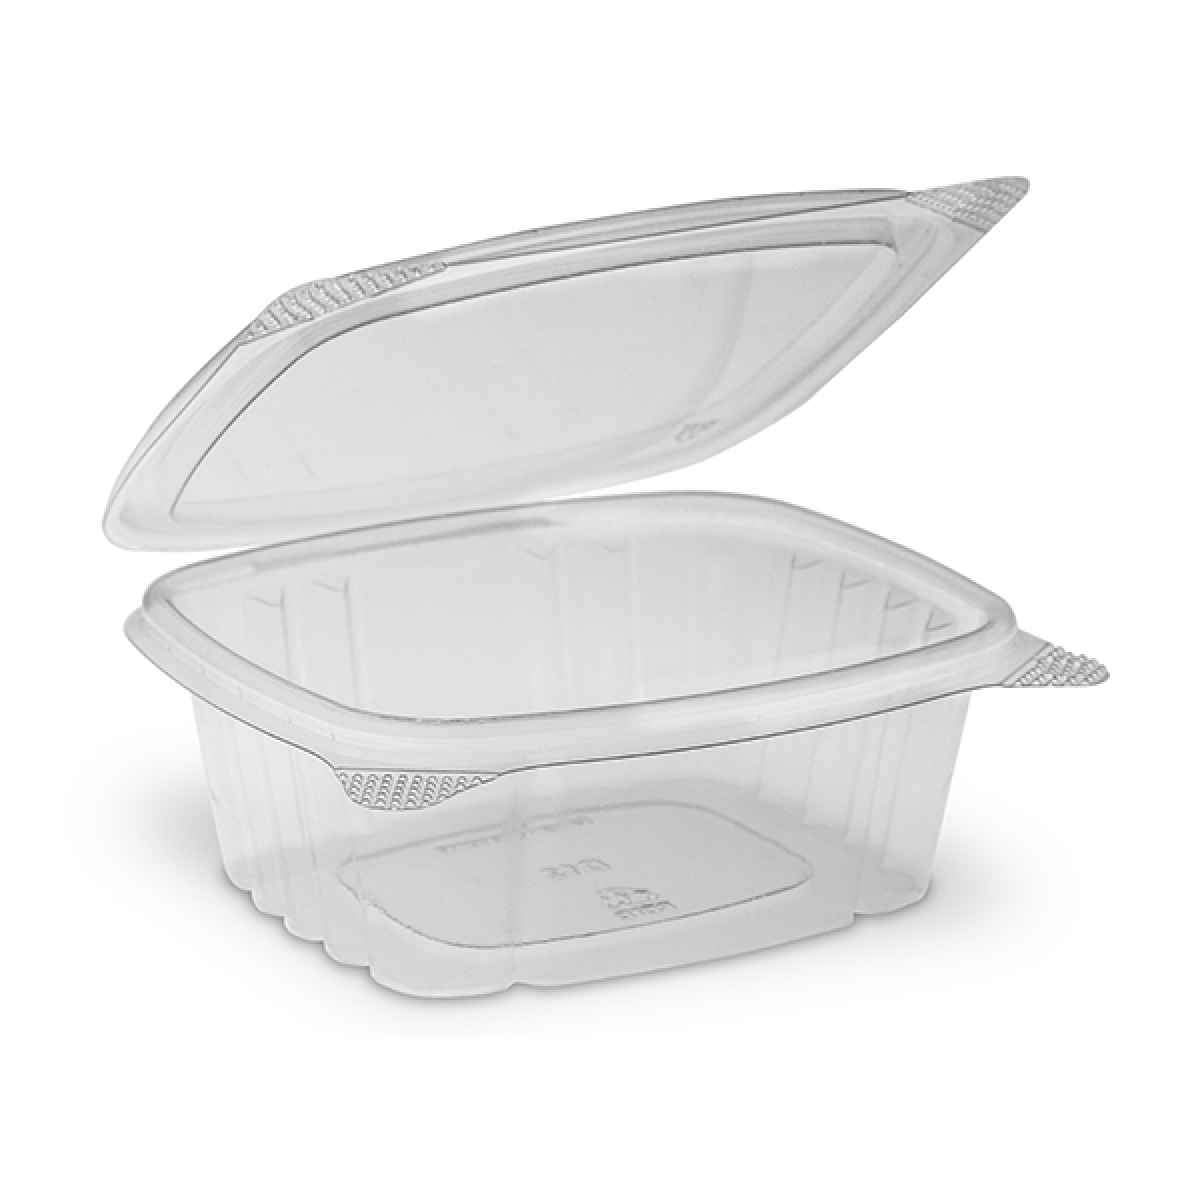 oval hinged container with lid 250 / 140*110 / 40